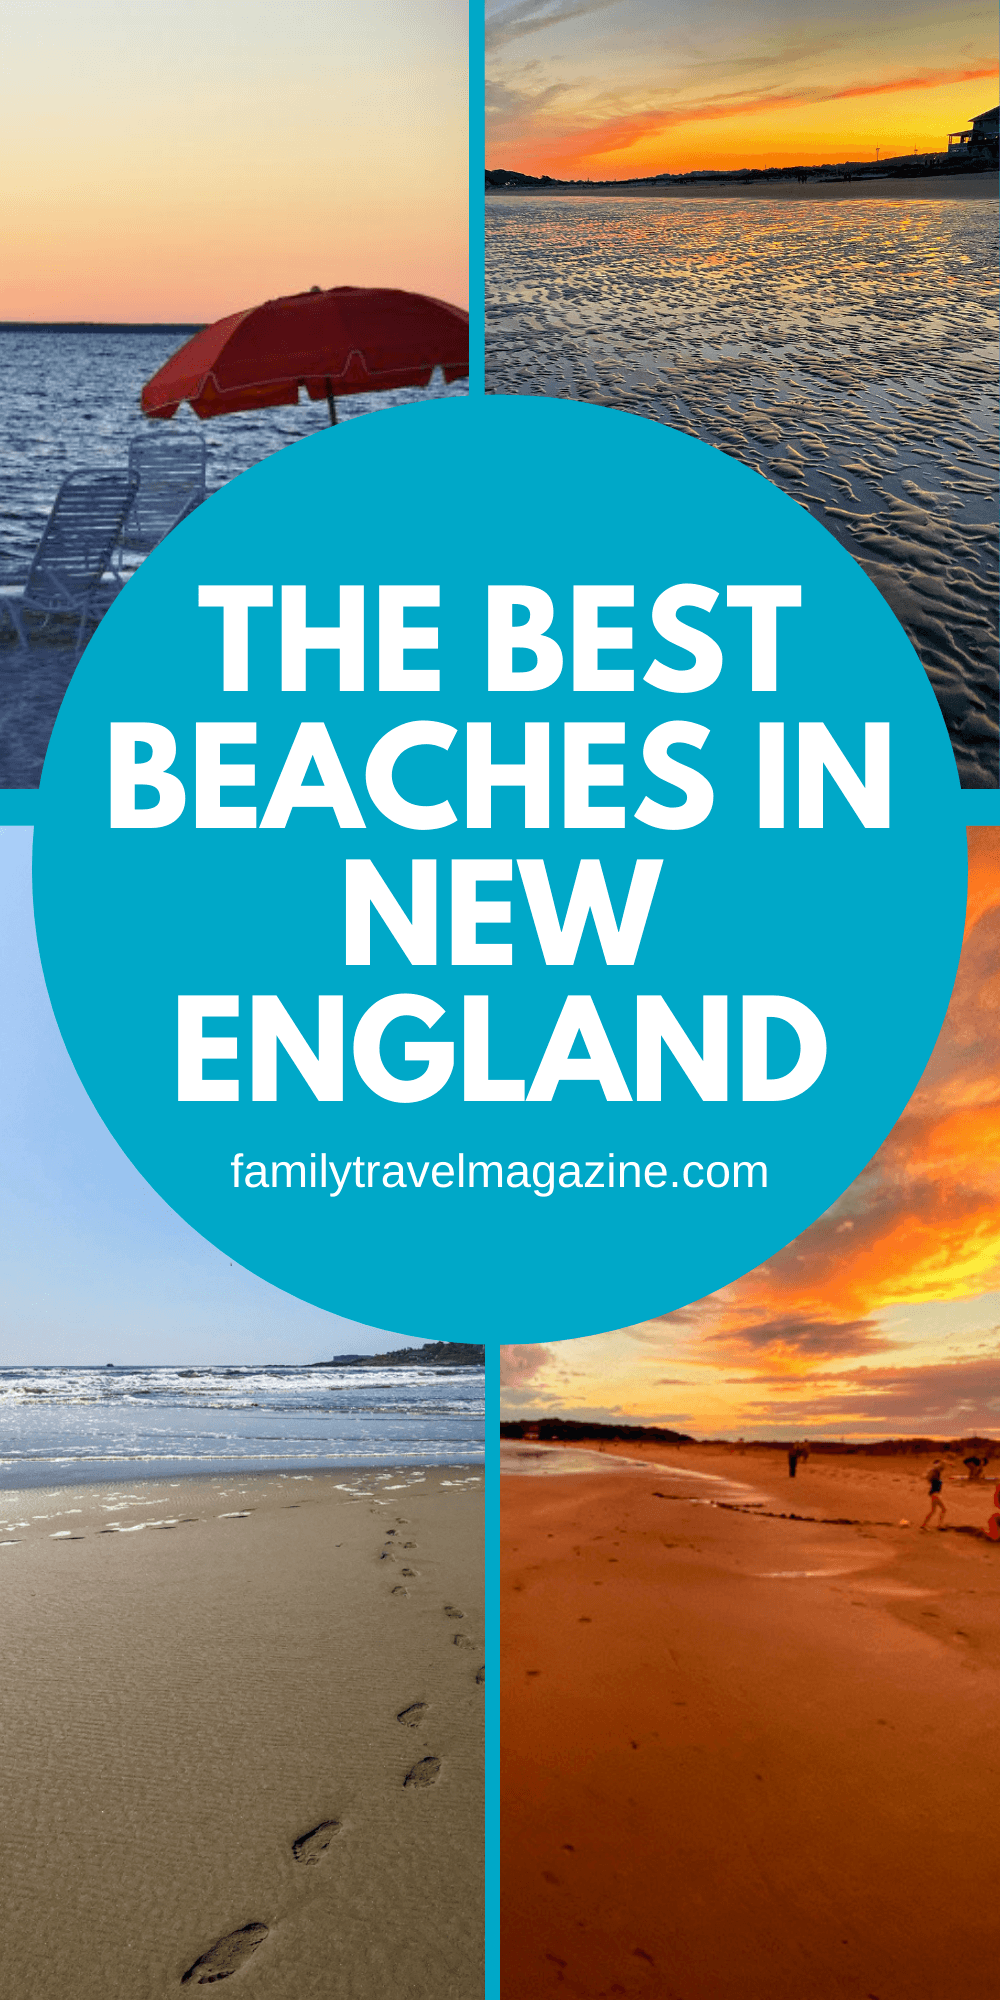 With lots of Atlantic coastline, the New England states have plenty of beaches for vacationers and locals to enjoy. Join Family Travel Magazine readers to check out this post featuring the best New England beaches and towns to visit on vacation with kids.